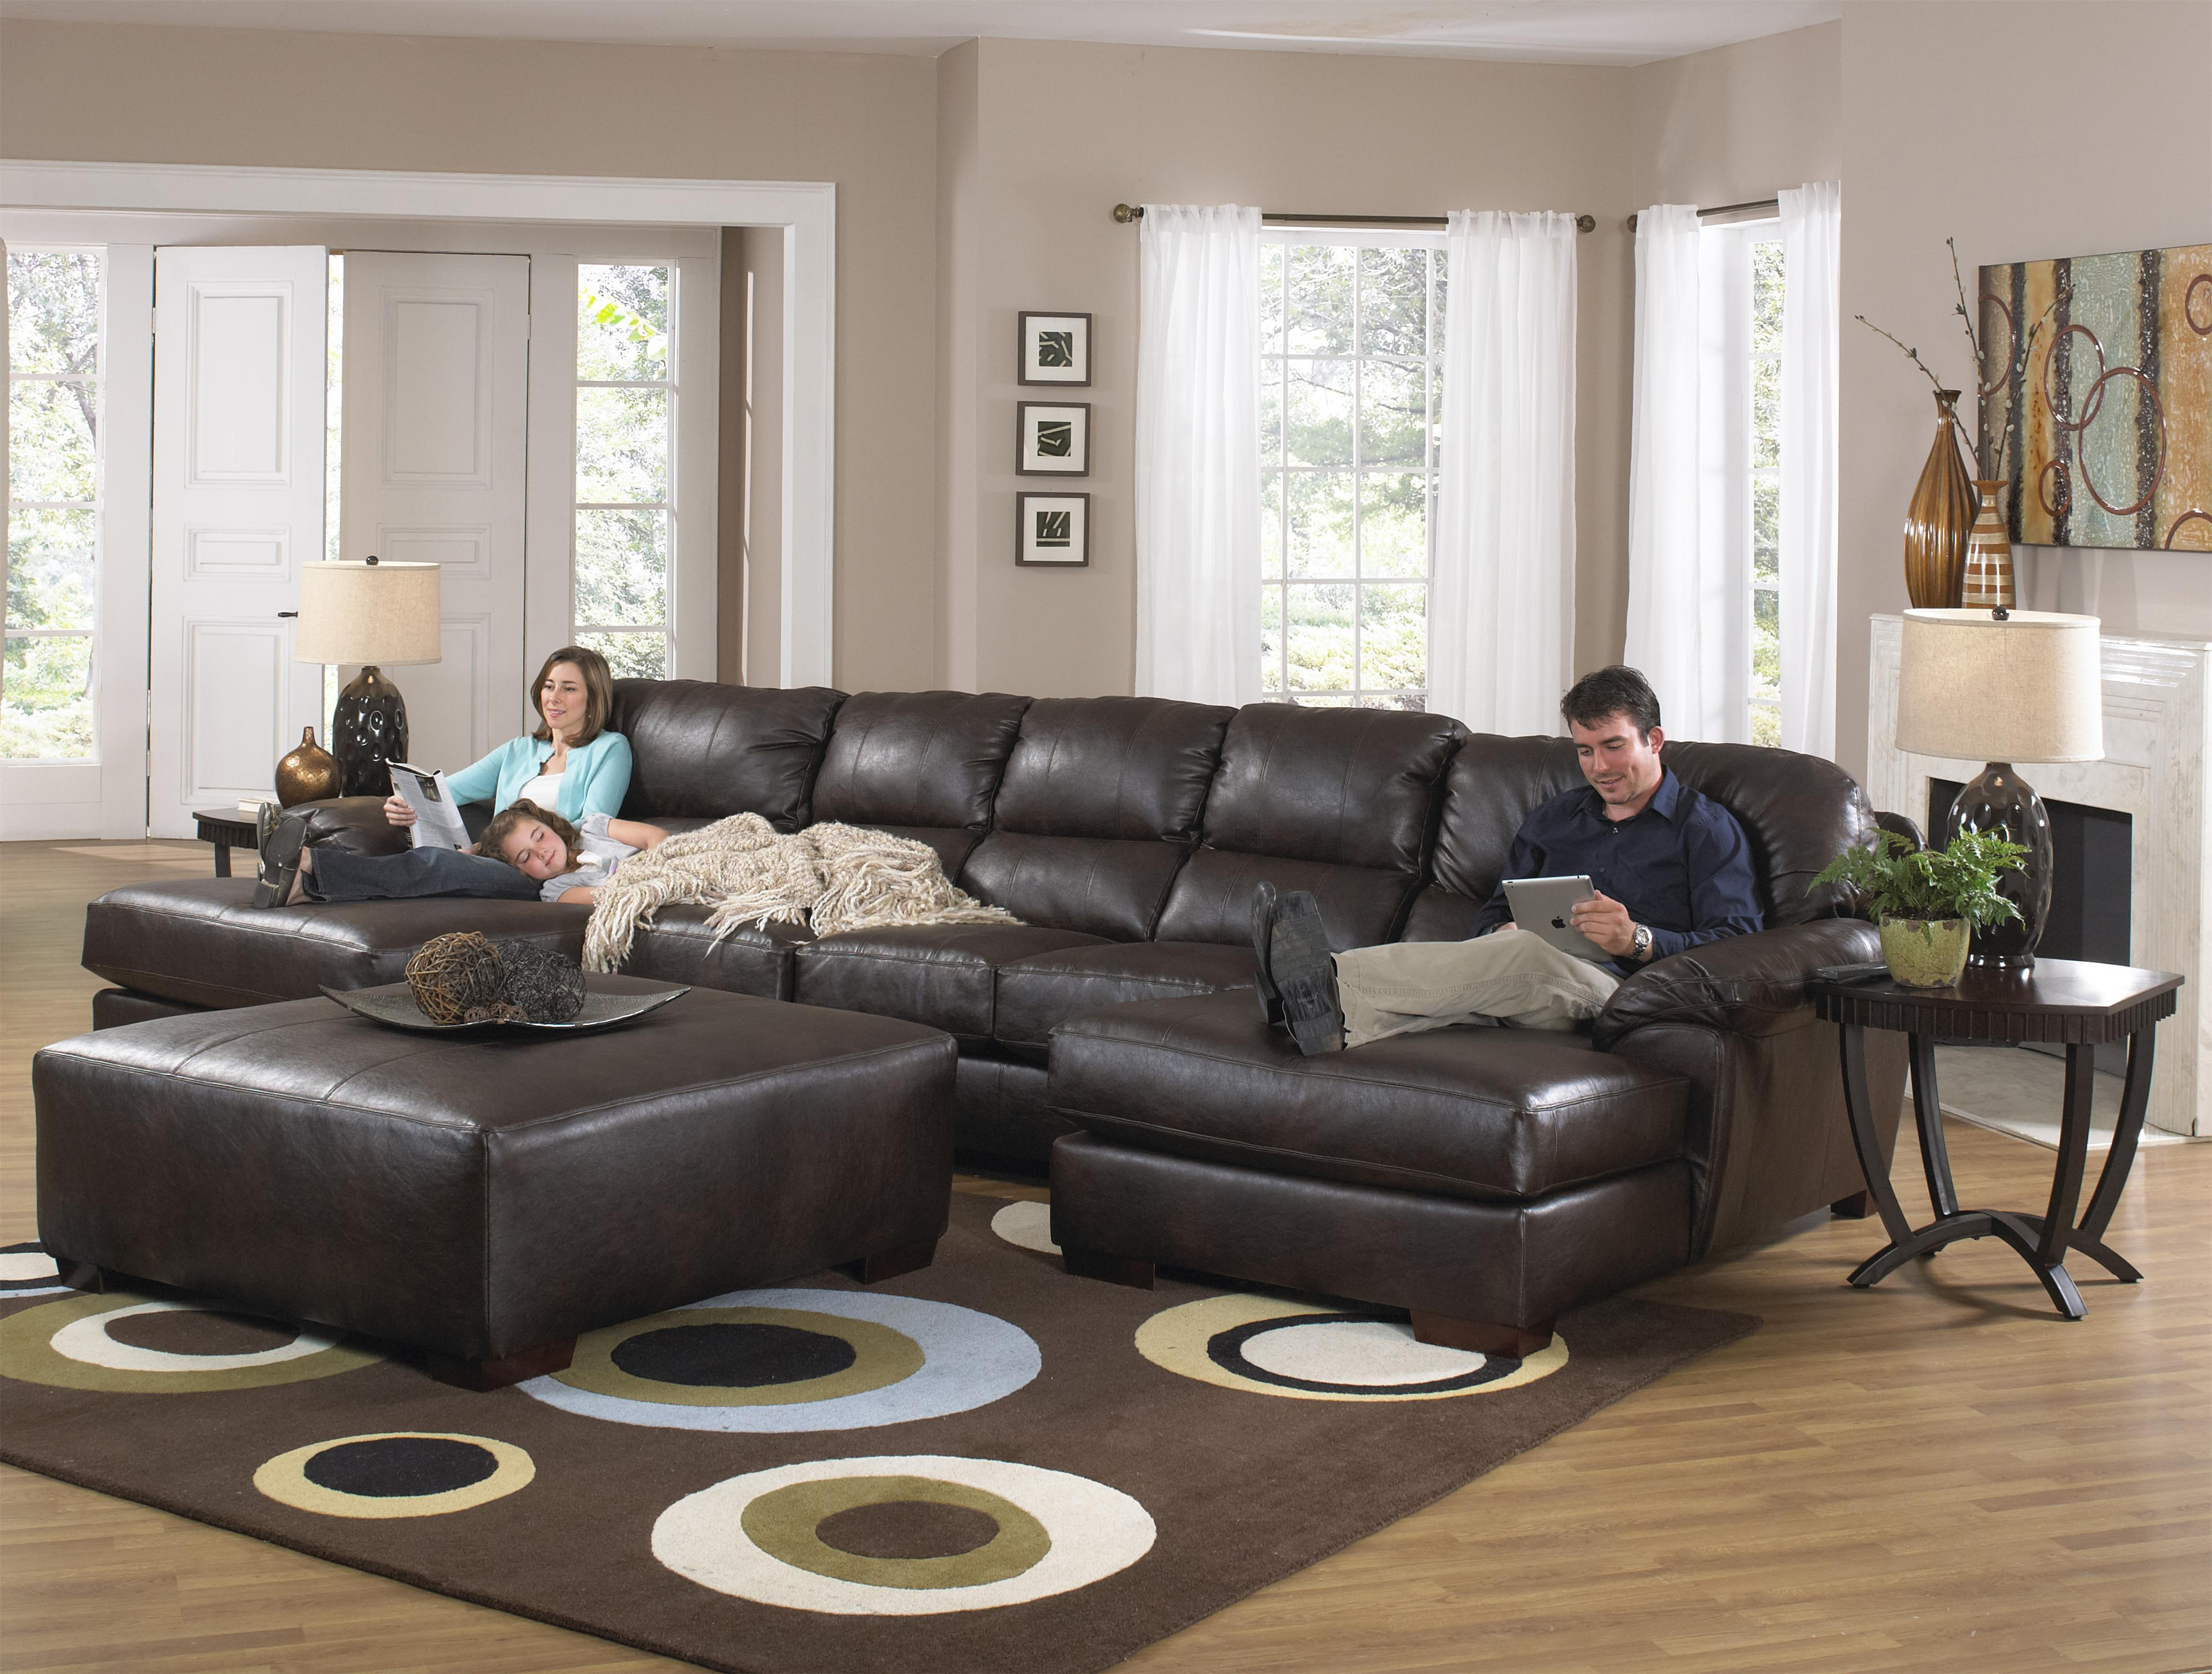 Jackson Furniture Lawson Three Seat Sectional Sofa with Console and Chaise - L Fish - Sectional Sofas : reclining couch with chaise - Sectionals, Sofas & Couches